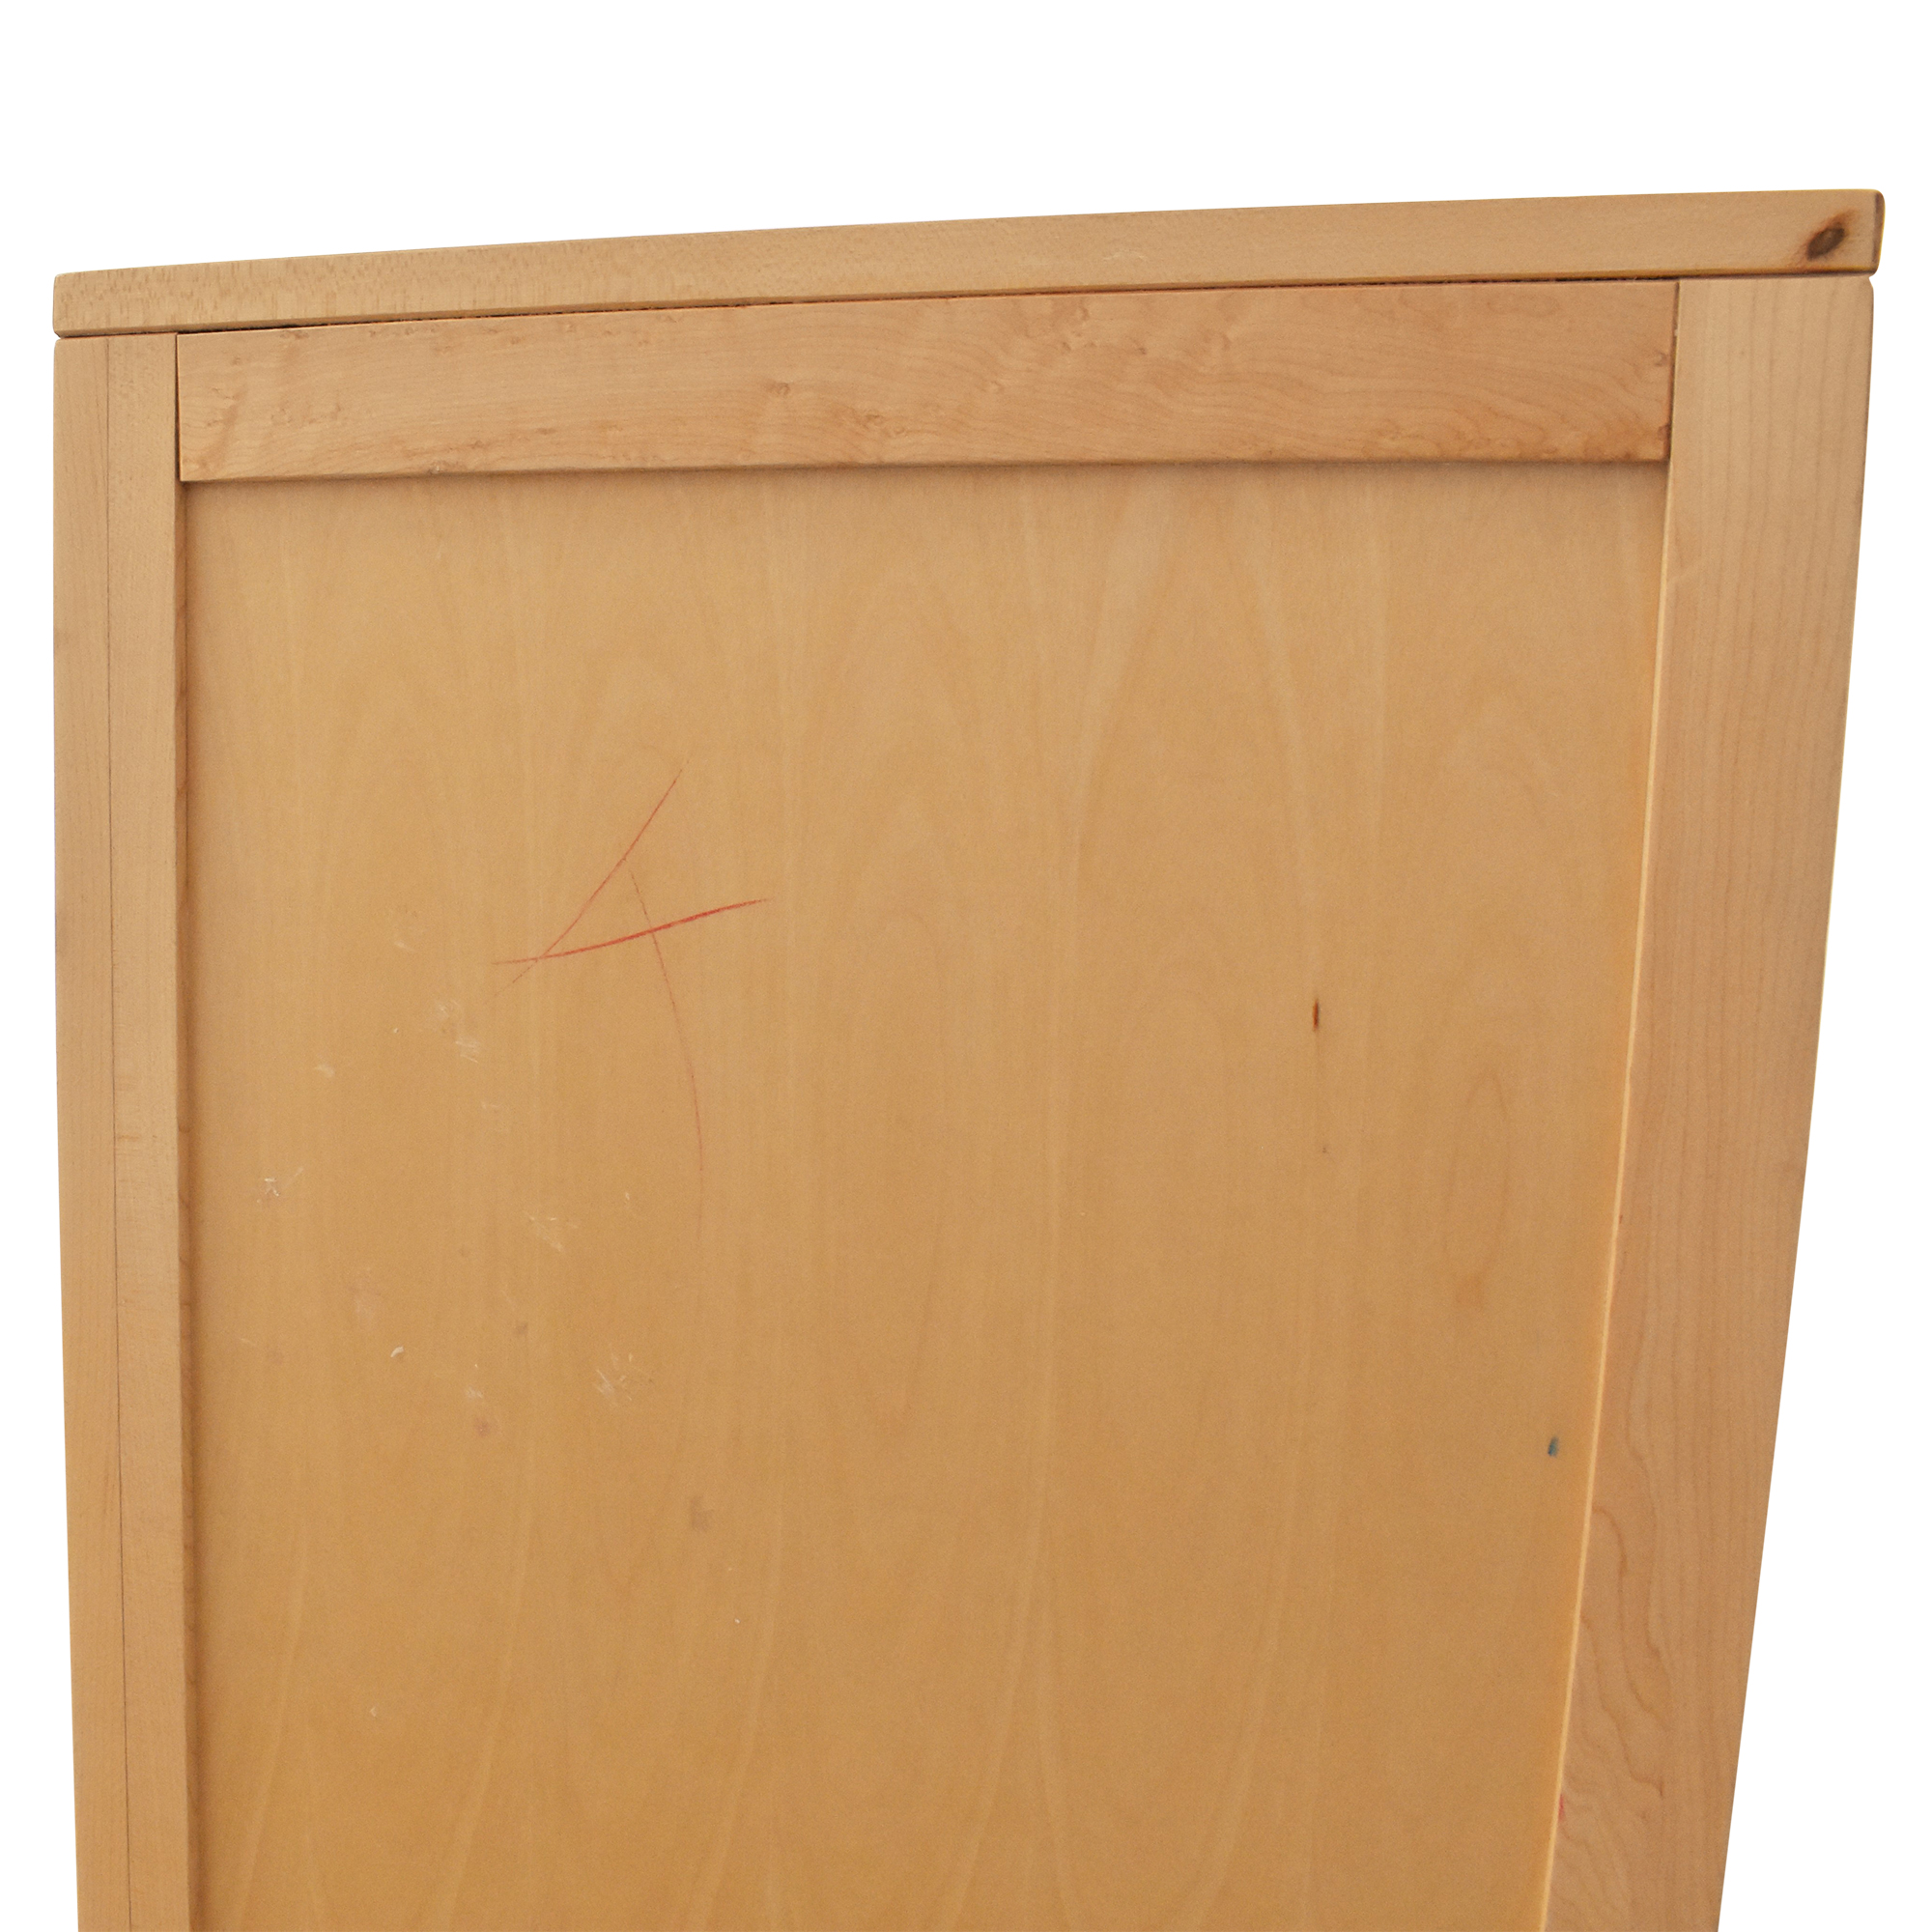 Six Drawer Double Dresser dimensions